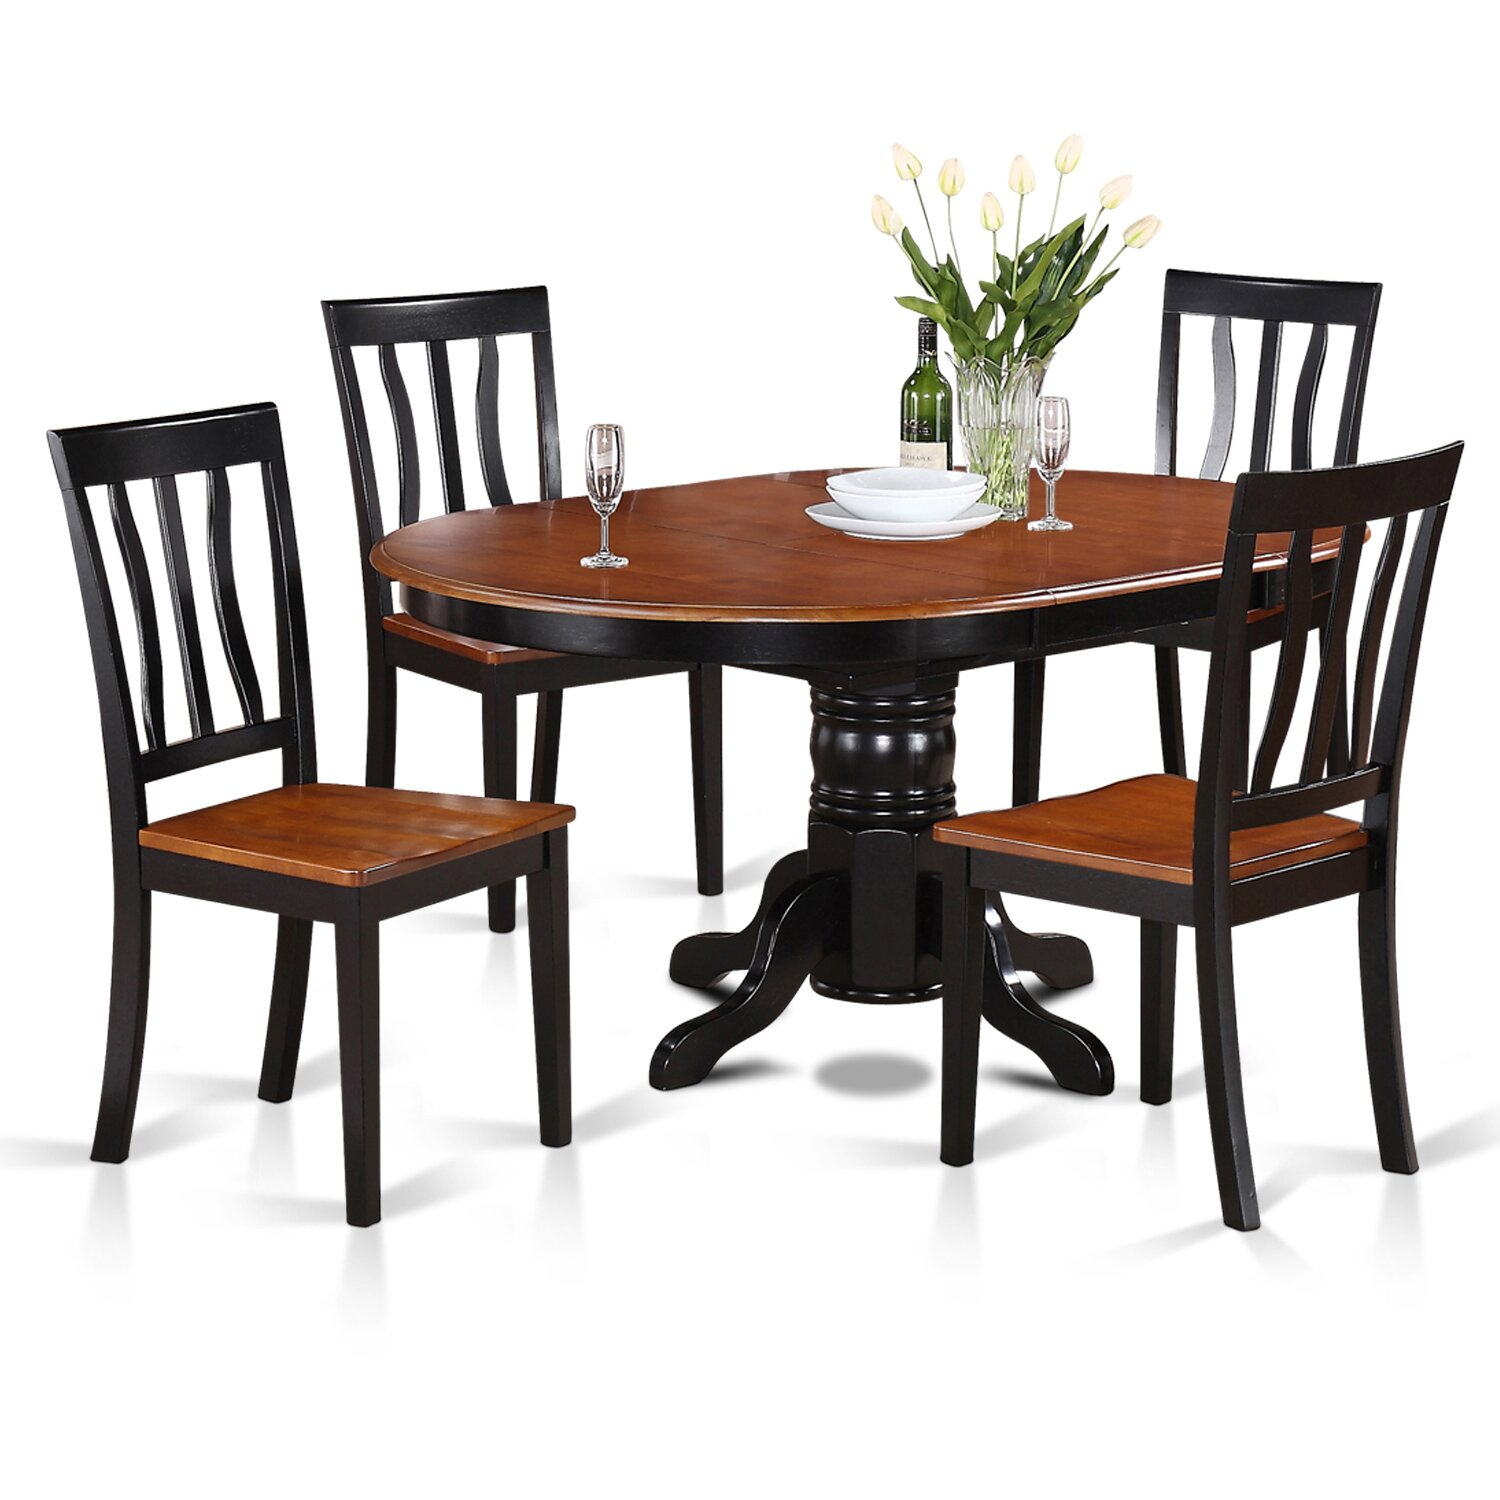 Wooden Importers 3 Piece Dining Set Reviews: Wooden Importers Easton 5 Piece Dining Set & Reviews